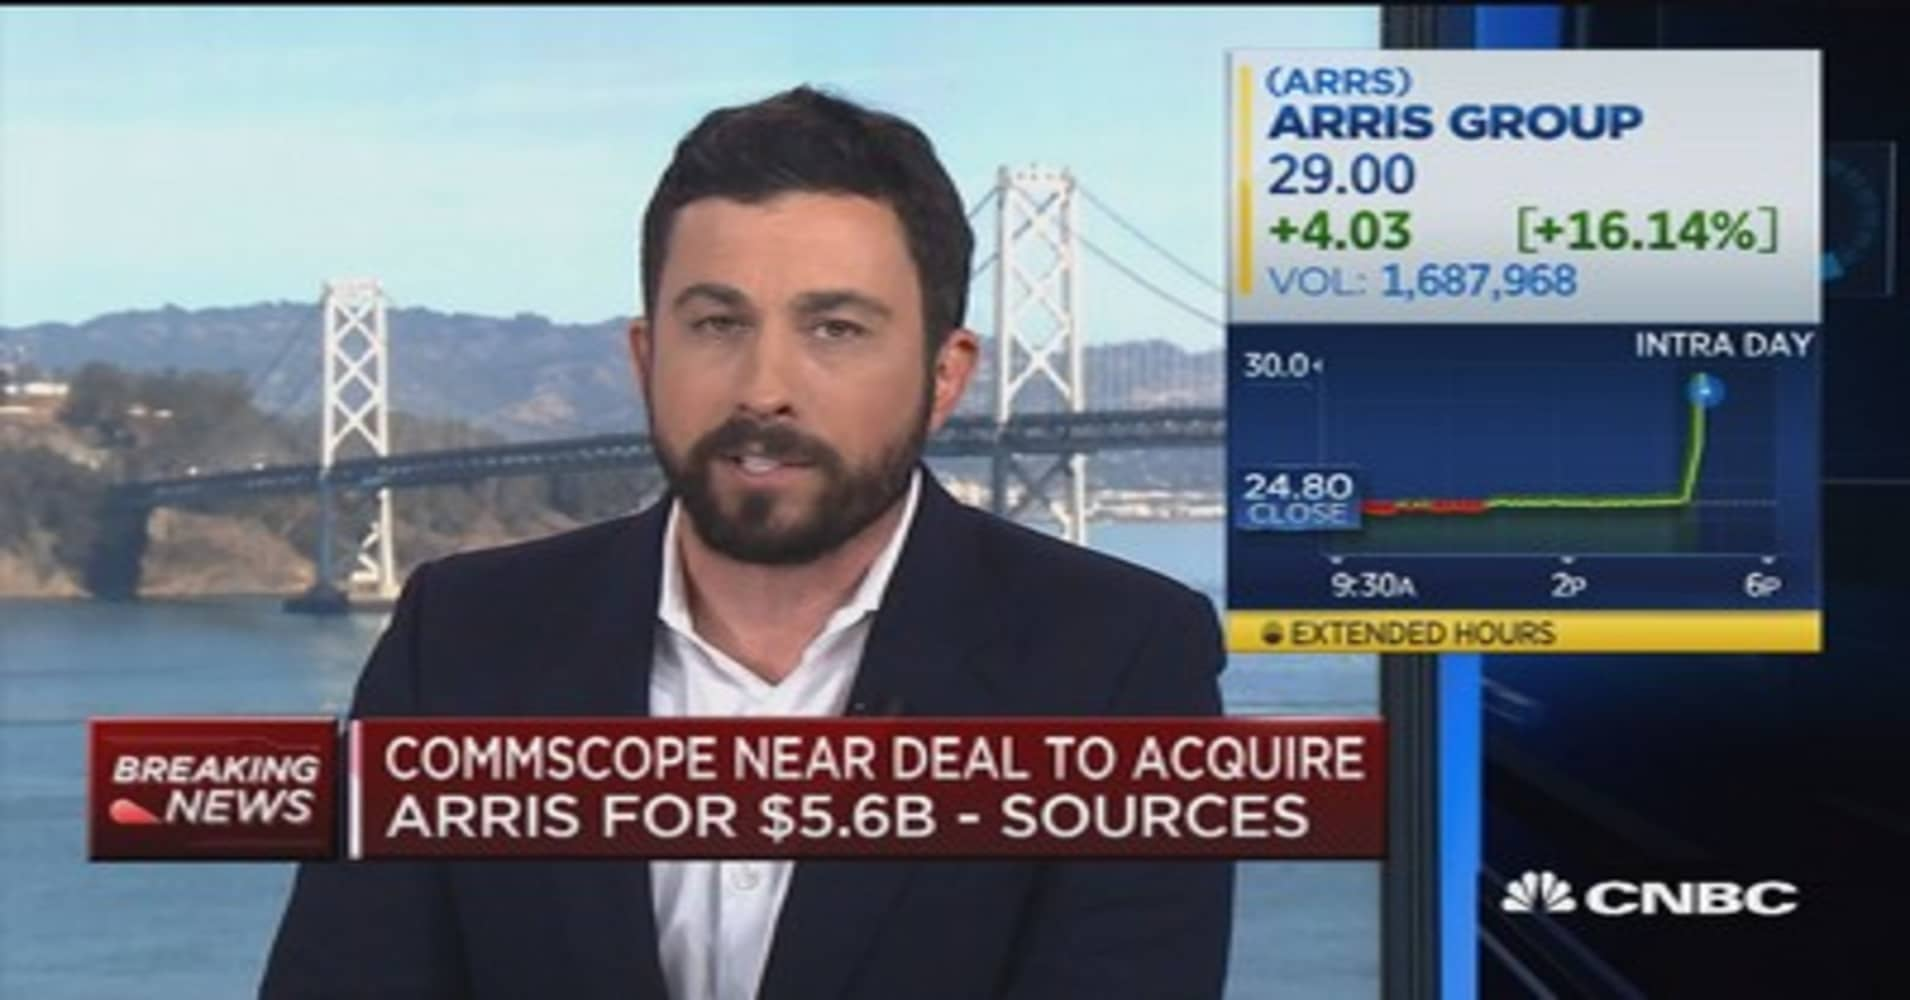 CommScope nears deal to acquire Arris